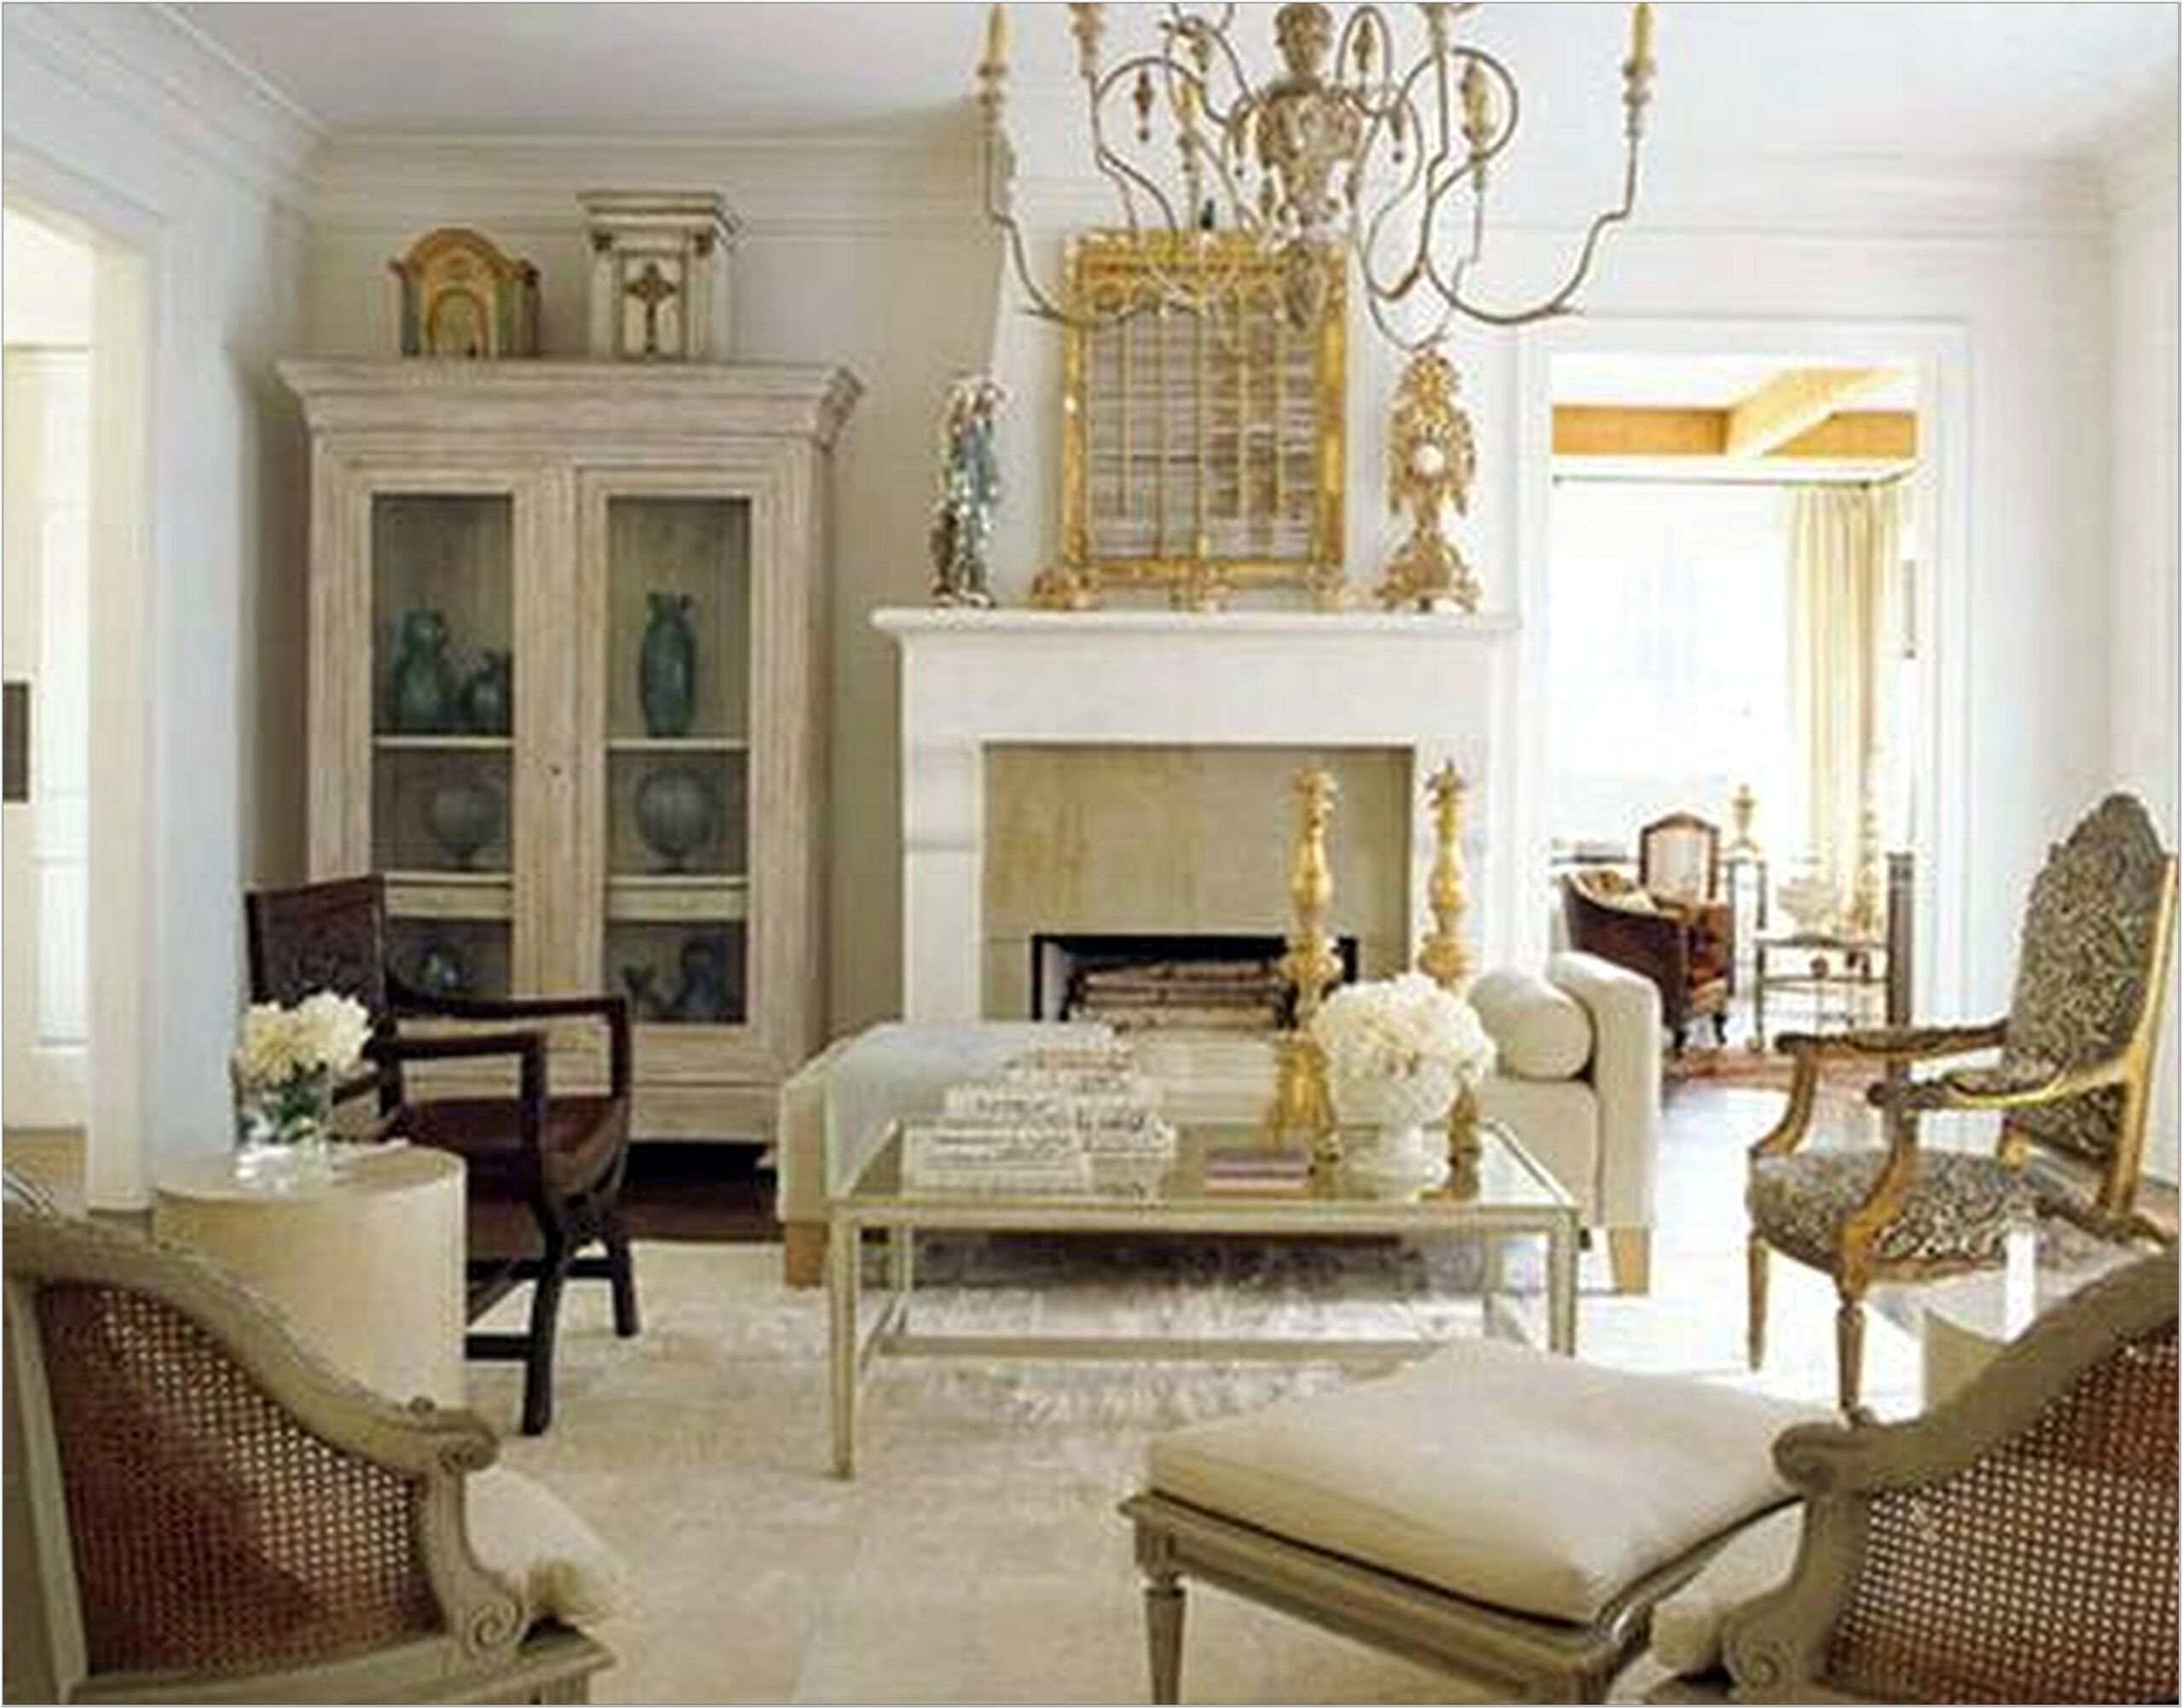 French Country Decorating Ideas For Living Roomssplendid Country French Living Room Picture In Family Decor Super